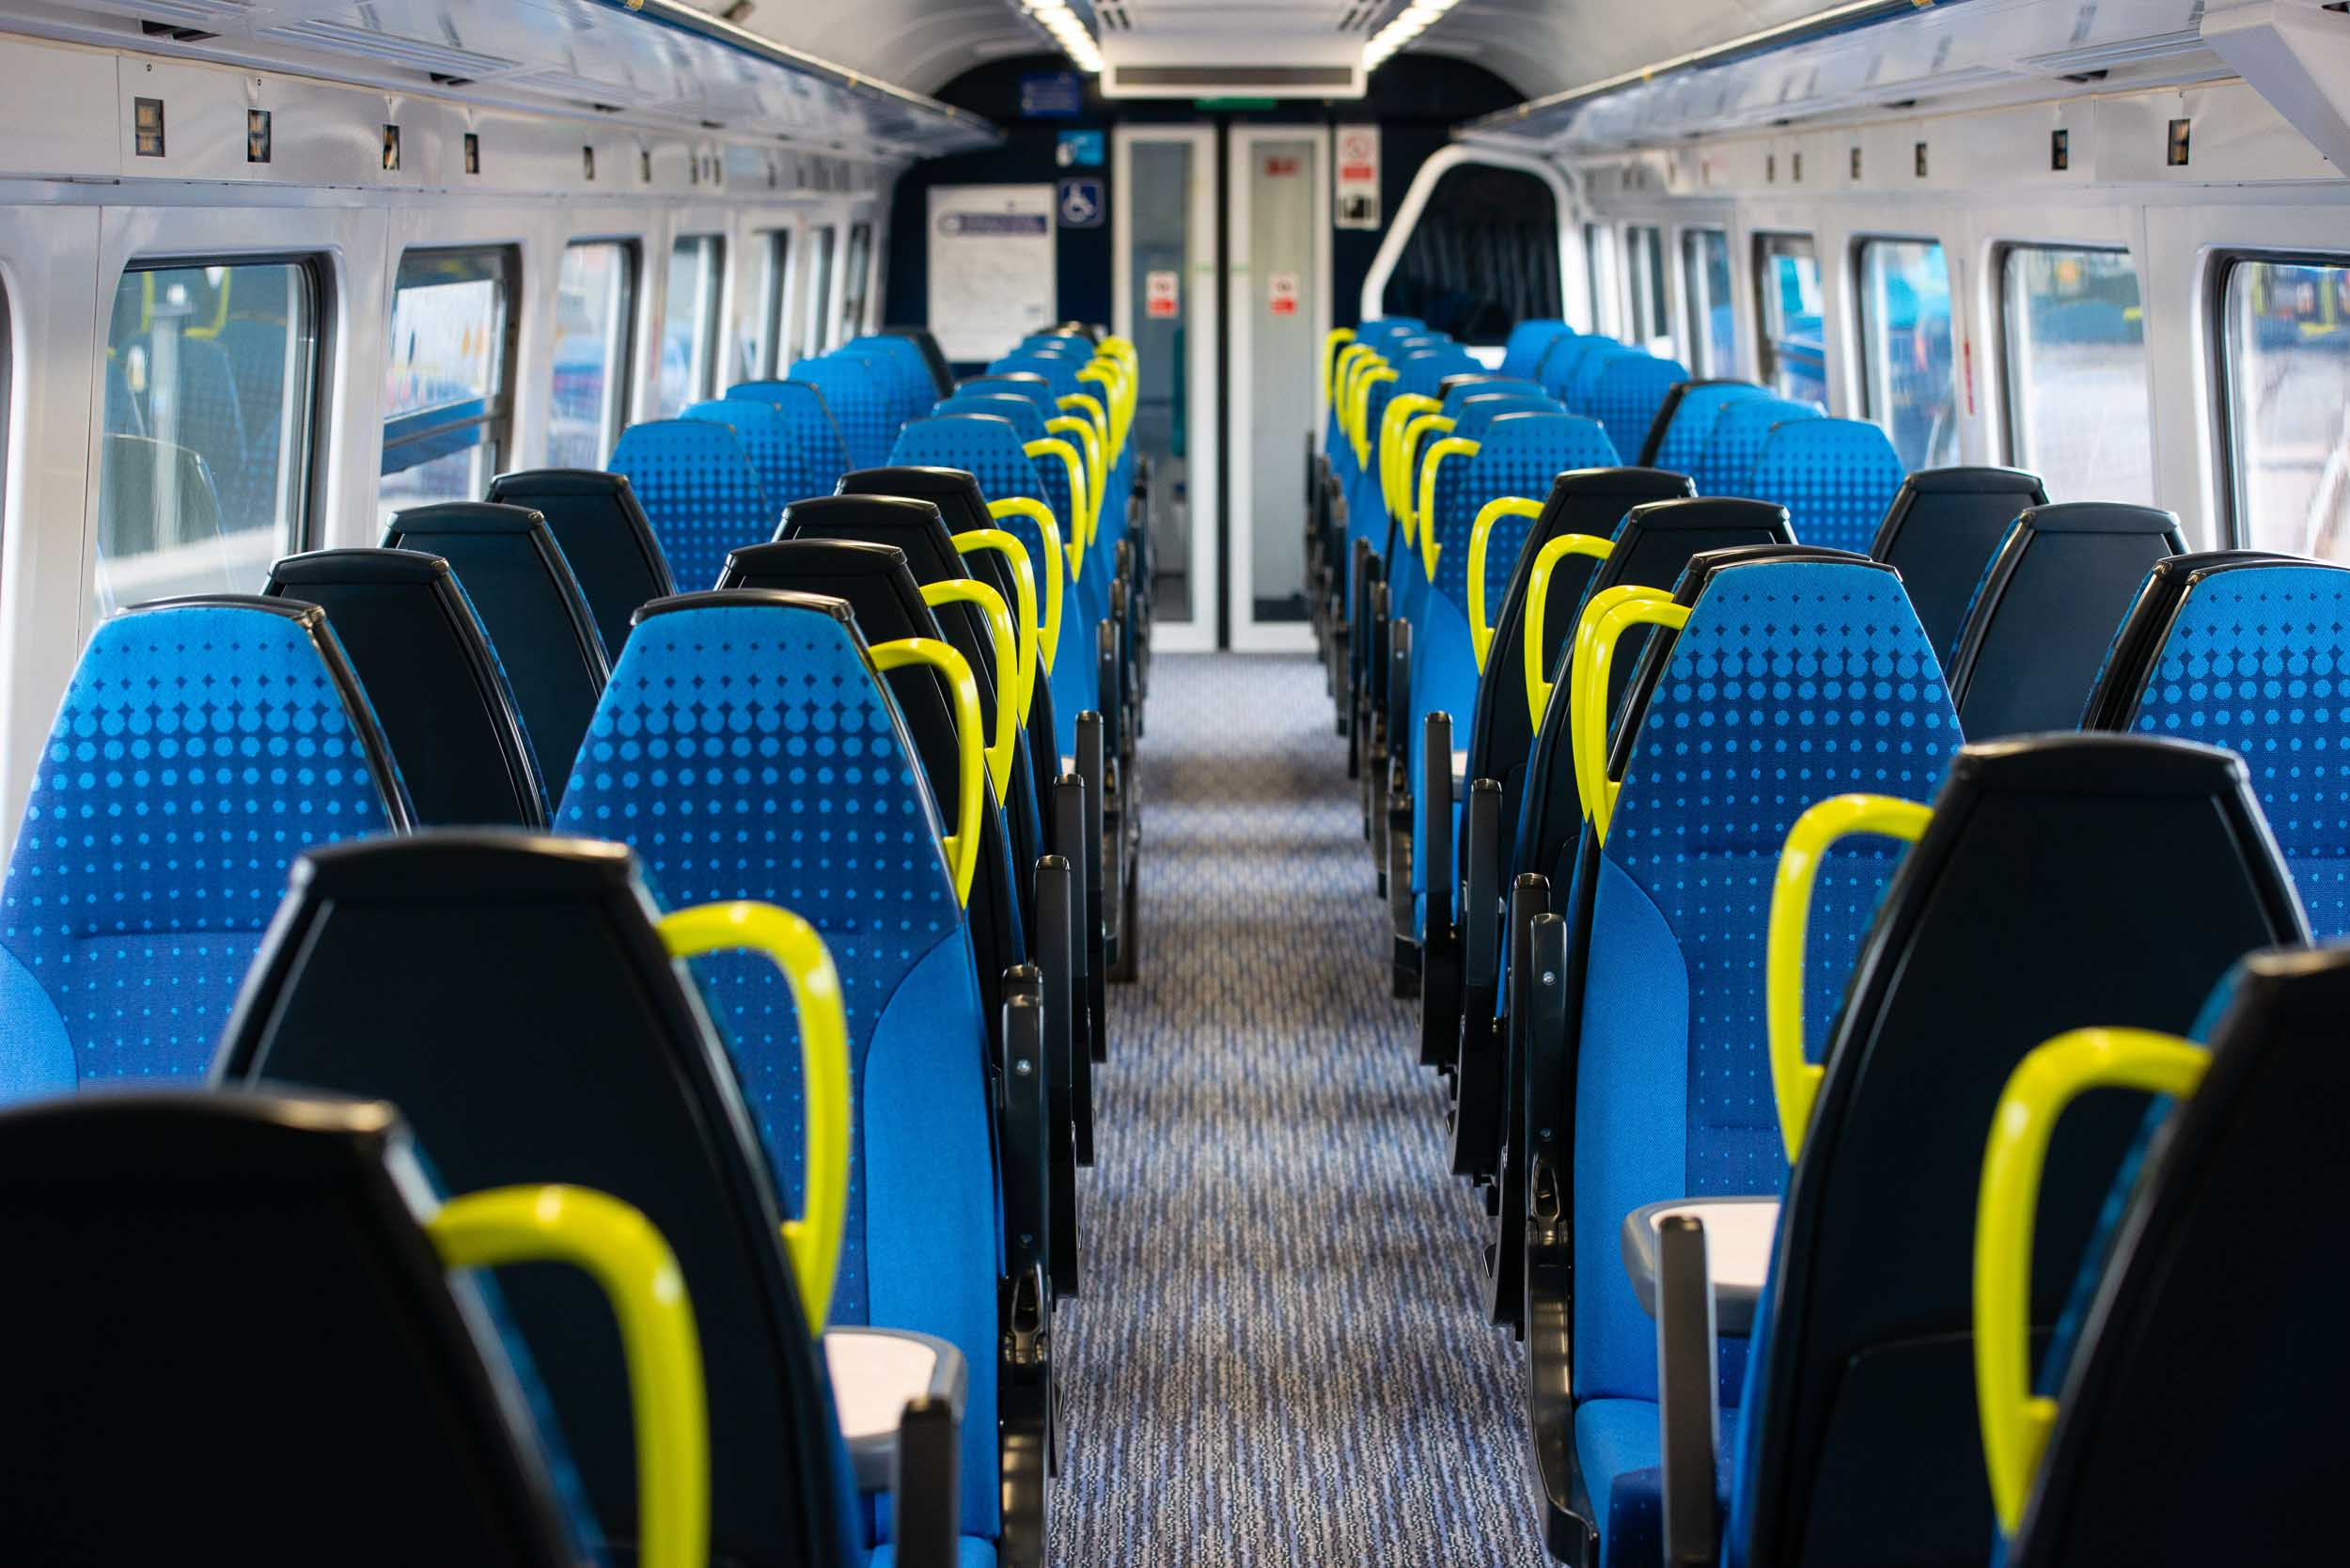 Arrive Northern Rail Corporate photography digital trains. The interior of a newly refurbished Ariva Northern train in England, UK